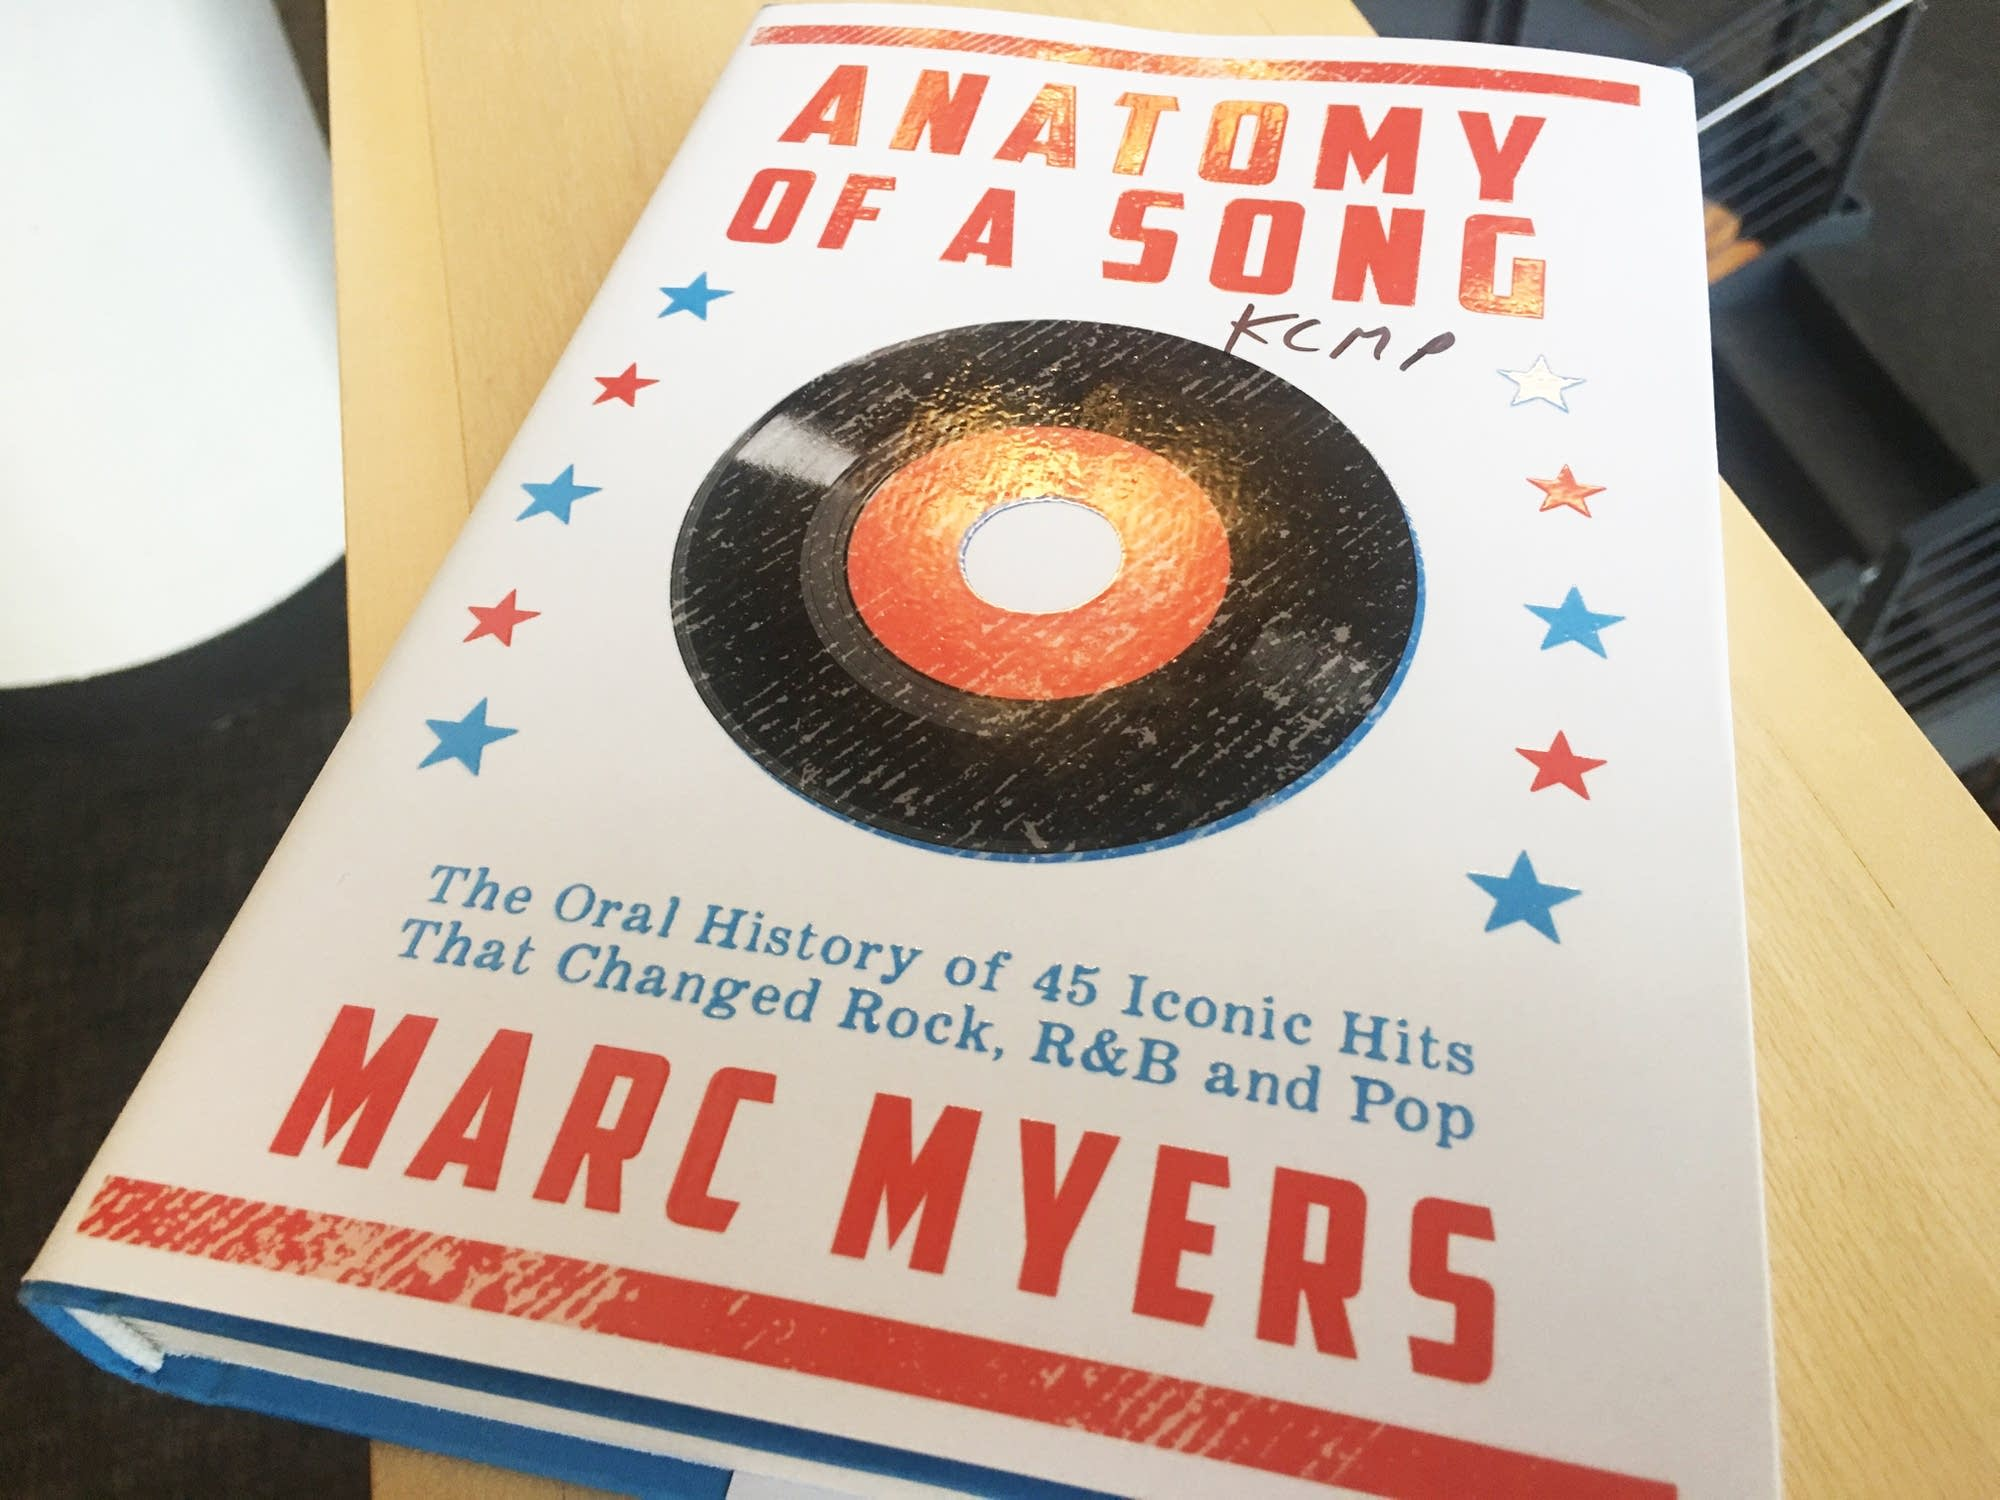 Marc Myers's 'Anatomy of a Song'